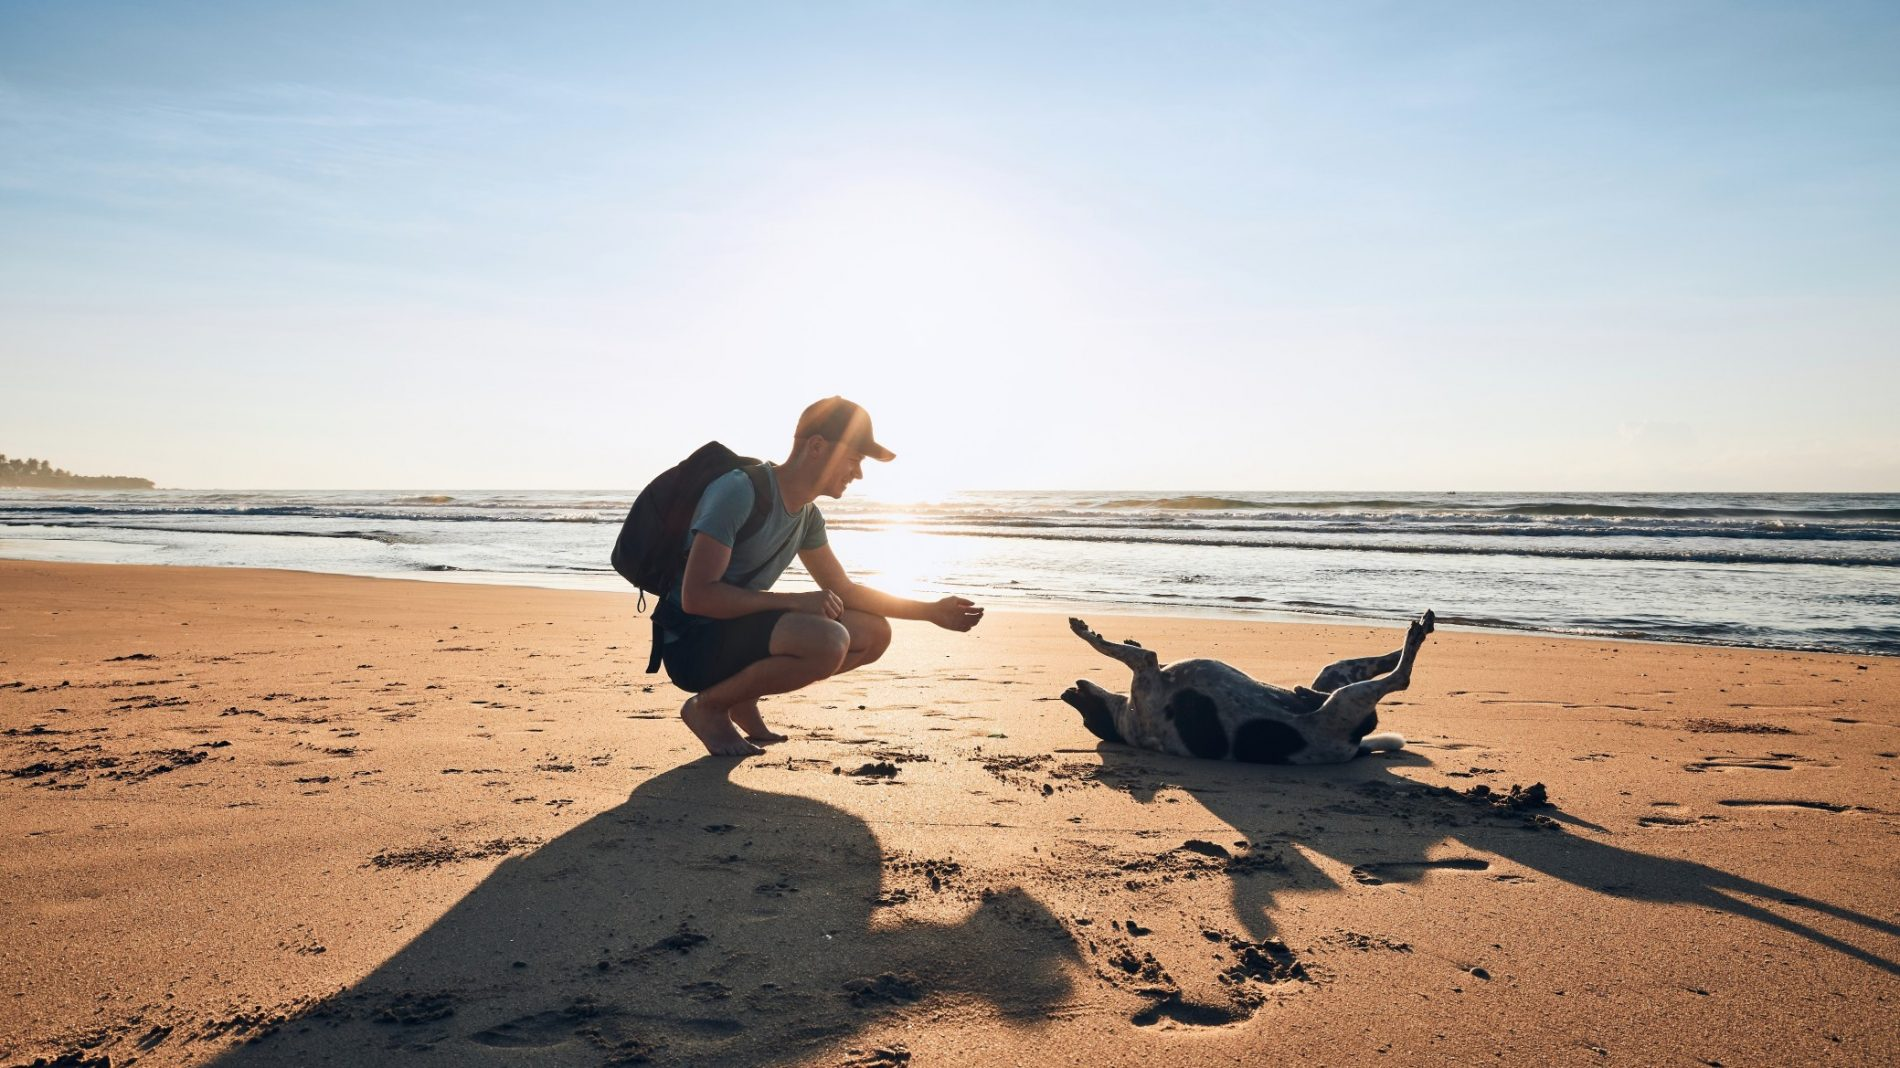 Young man on the beach with his dog during lockdown